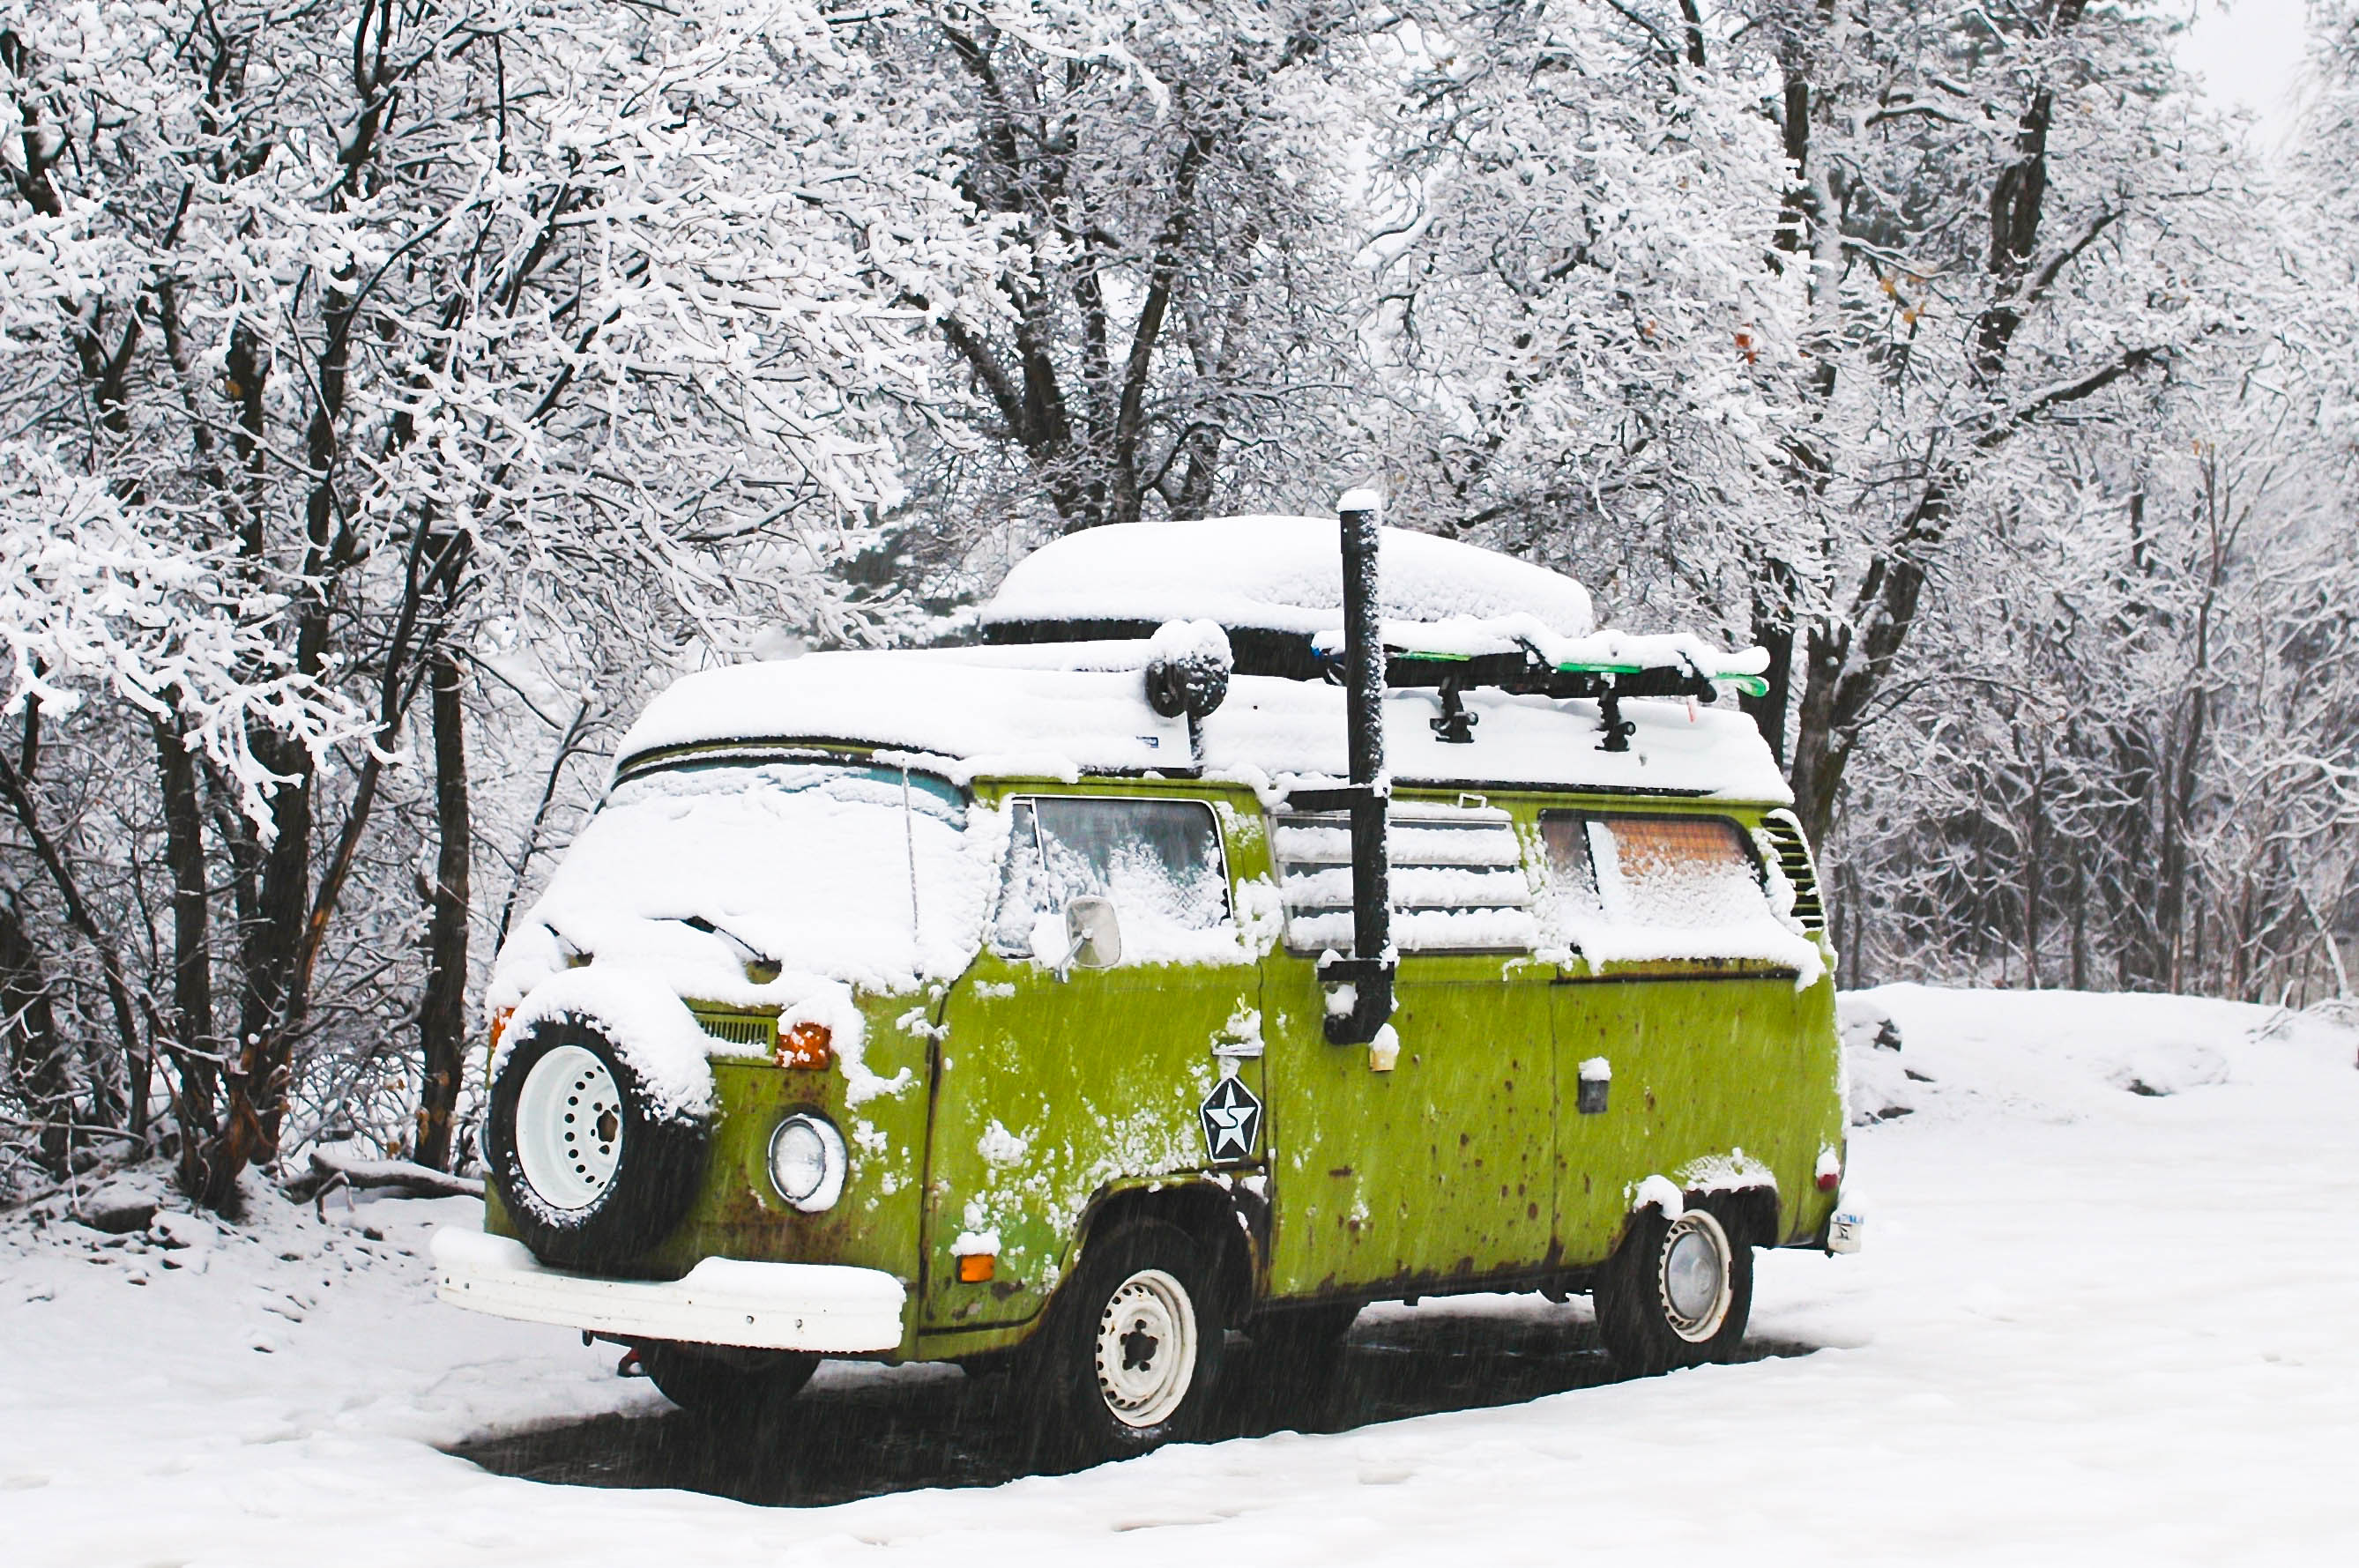 Pros And Cons Of Living In A VW Bus: Why We Chose A New